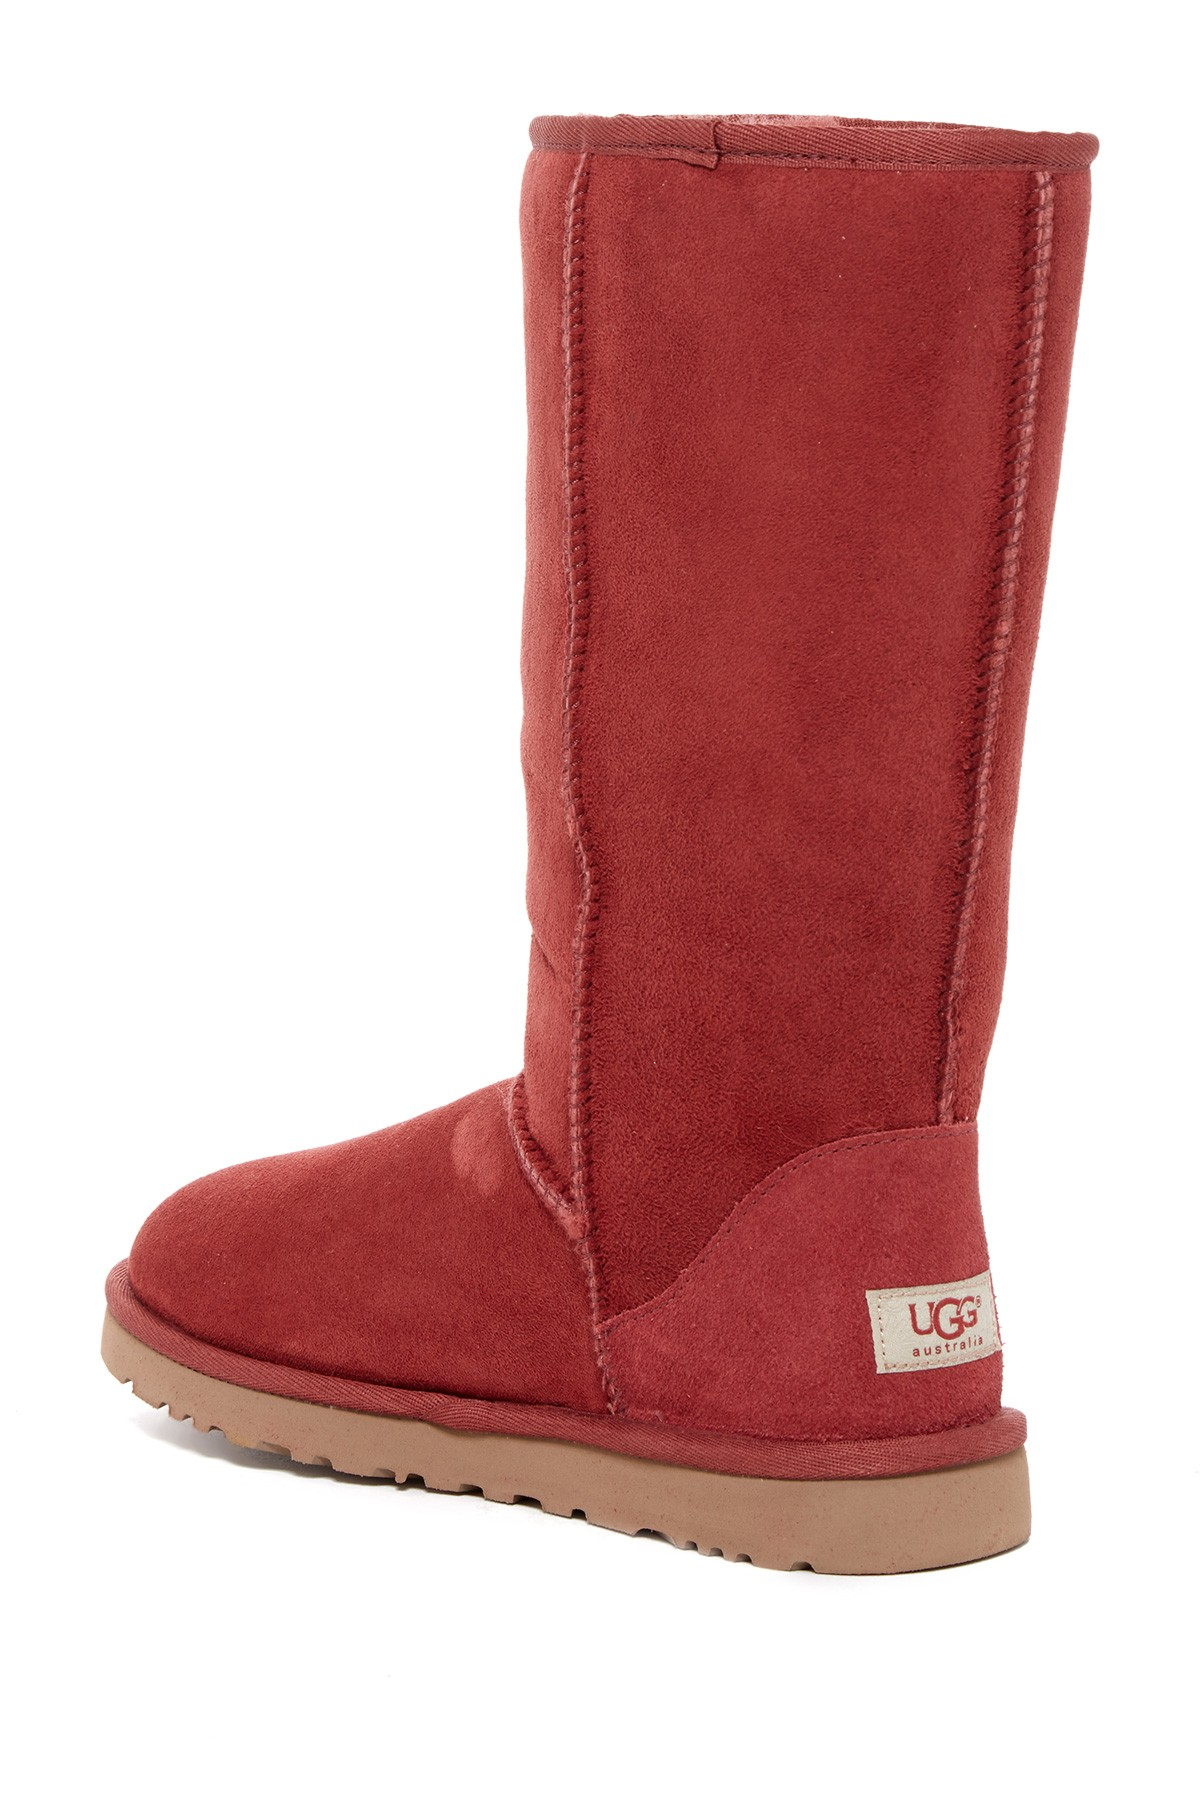 ugg ultimate classic short